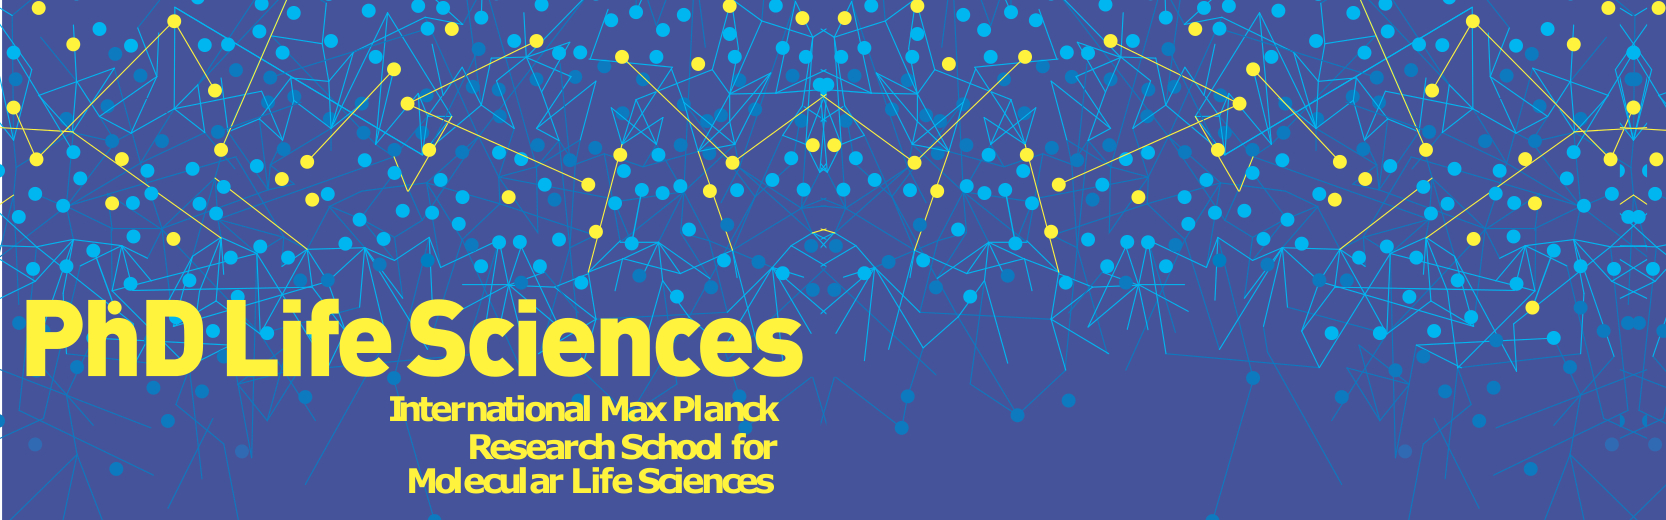 International Max Planck Research School for Molecular Life Sciences (IMPRS-LS) - PhD Program Open Call 2018/2019